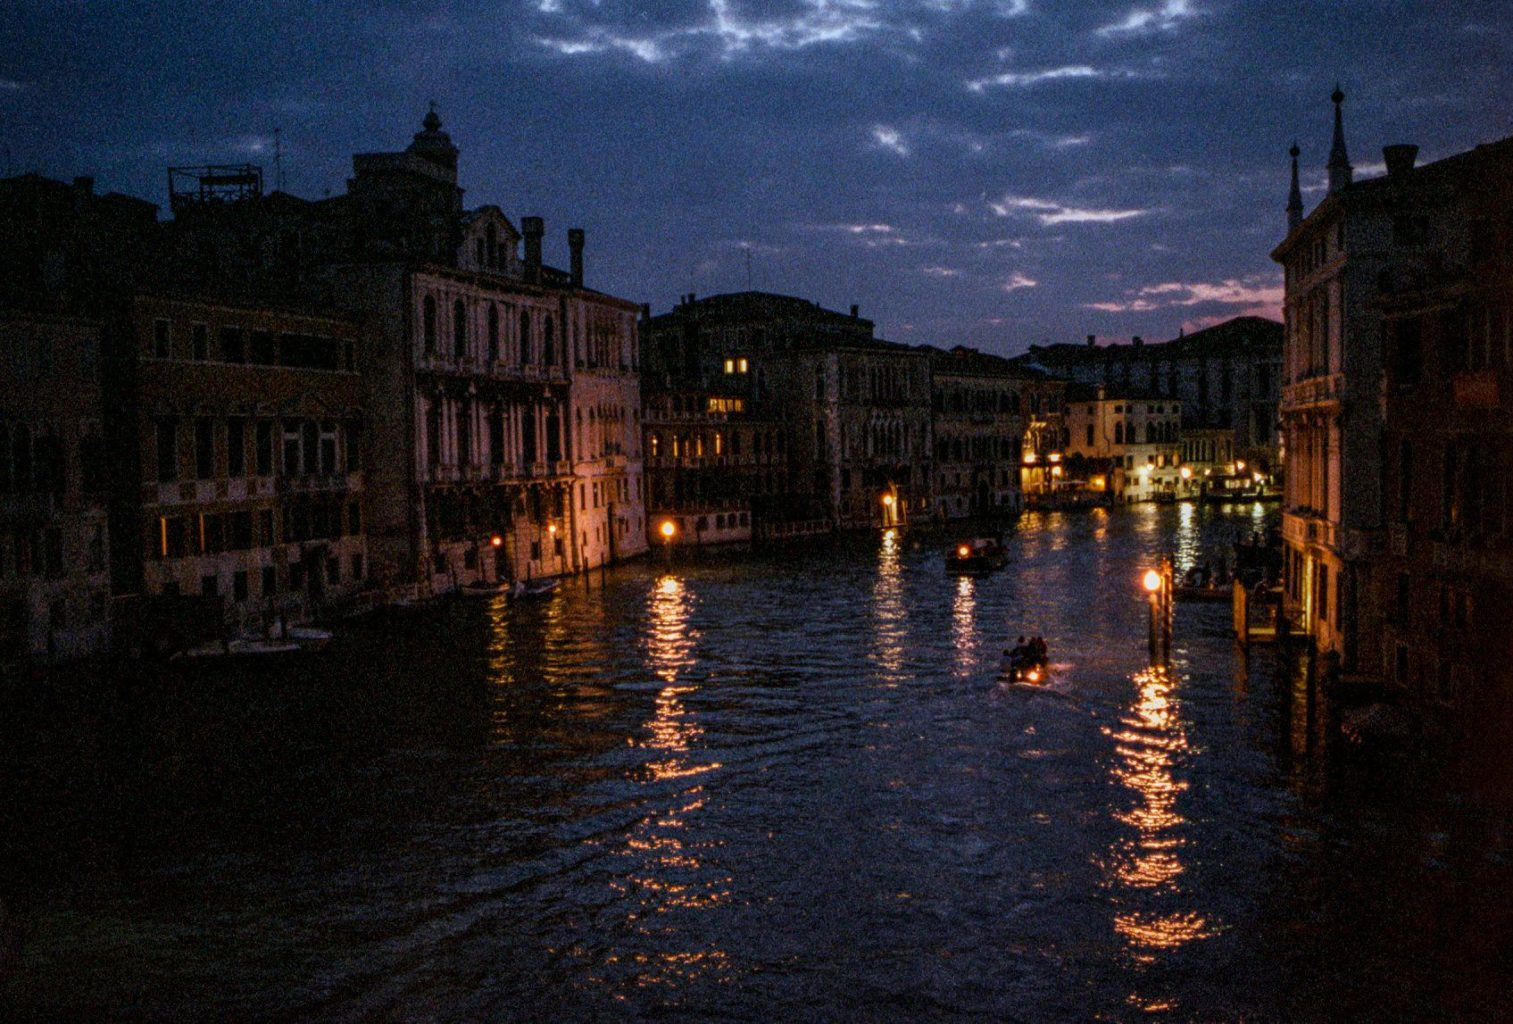 From Venezia with love.